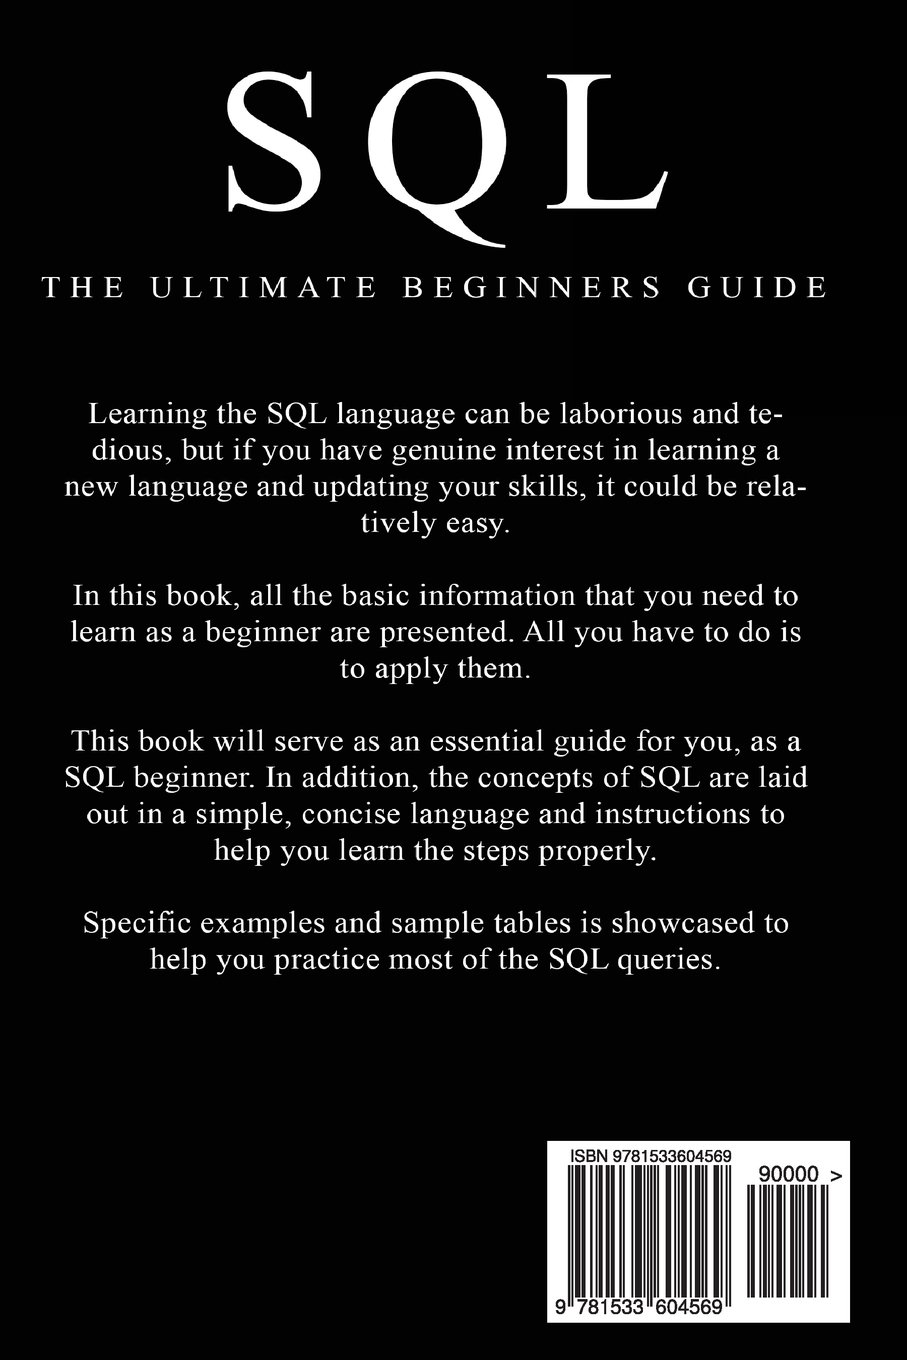 beginners guide to accessing the sql Odbc is a standard interface between a database (such as an sql database) and an application that accesses the data in the database having a standard enables any application front end to access any database back end by using sql in a client/server system, the interface between the client part and .